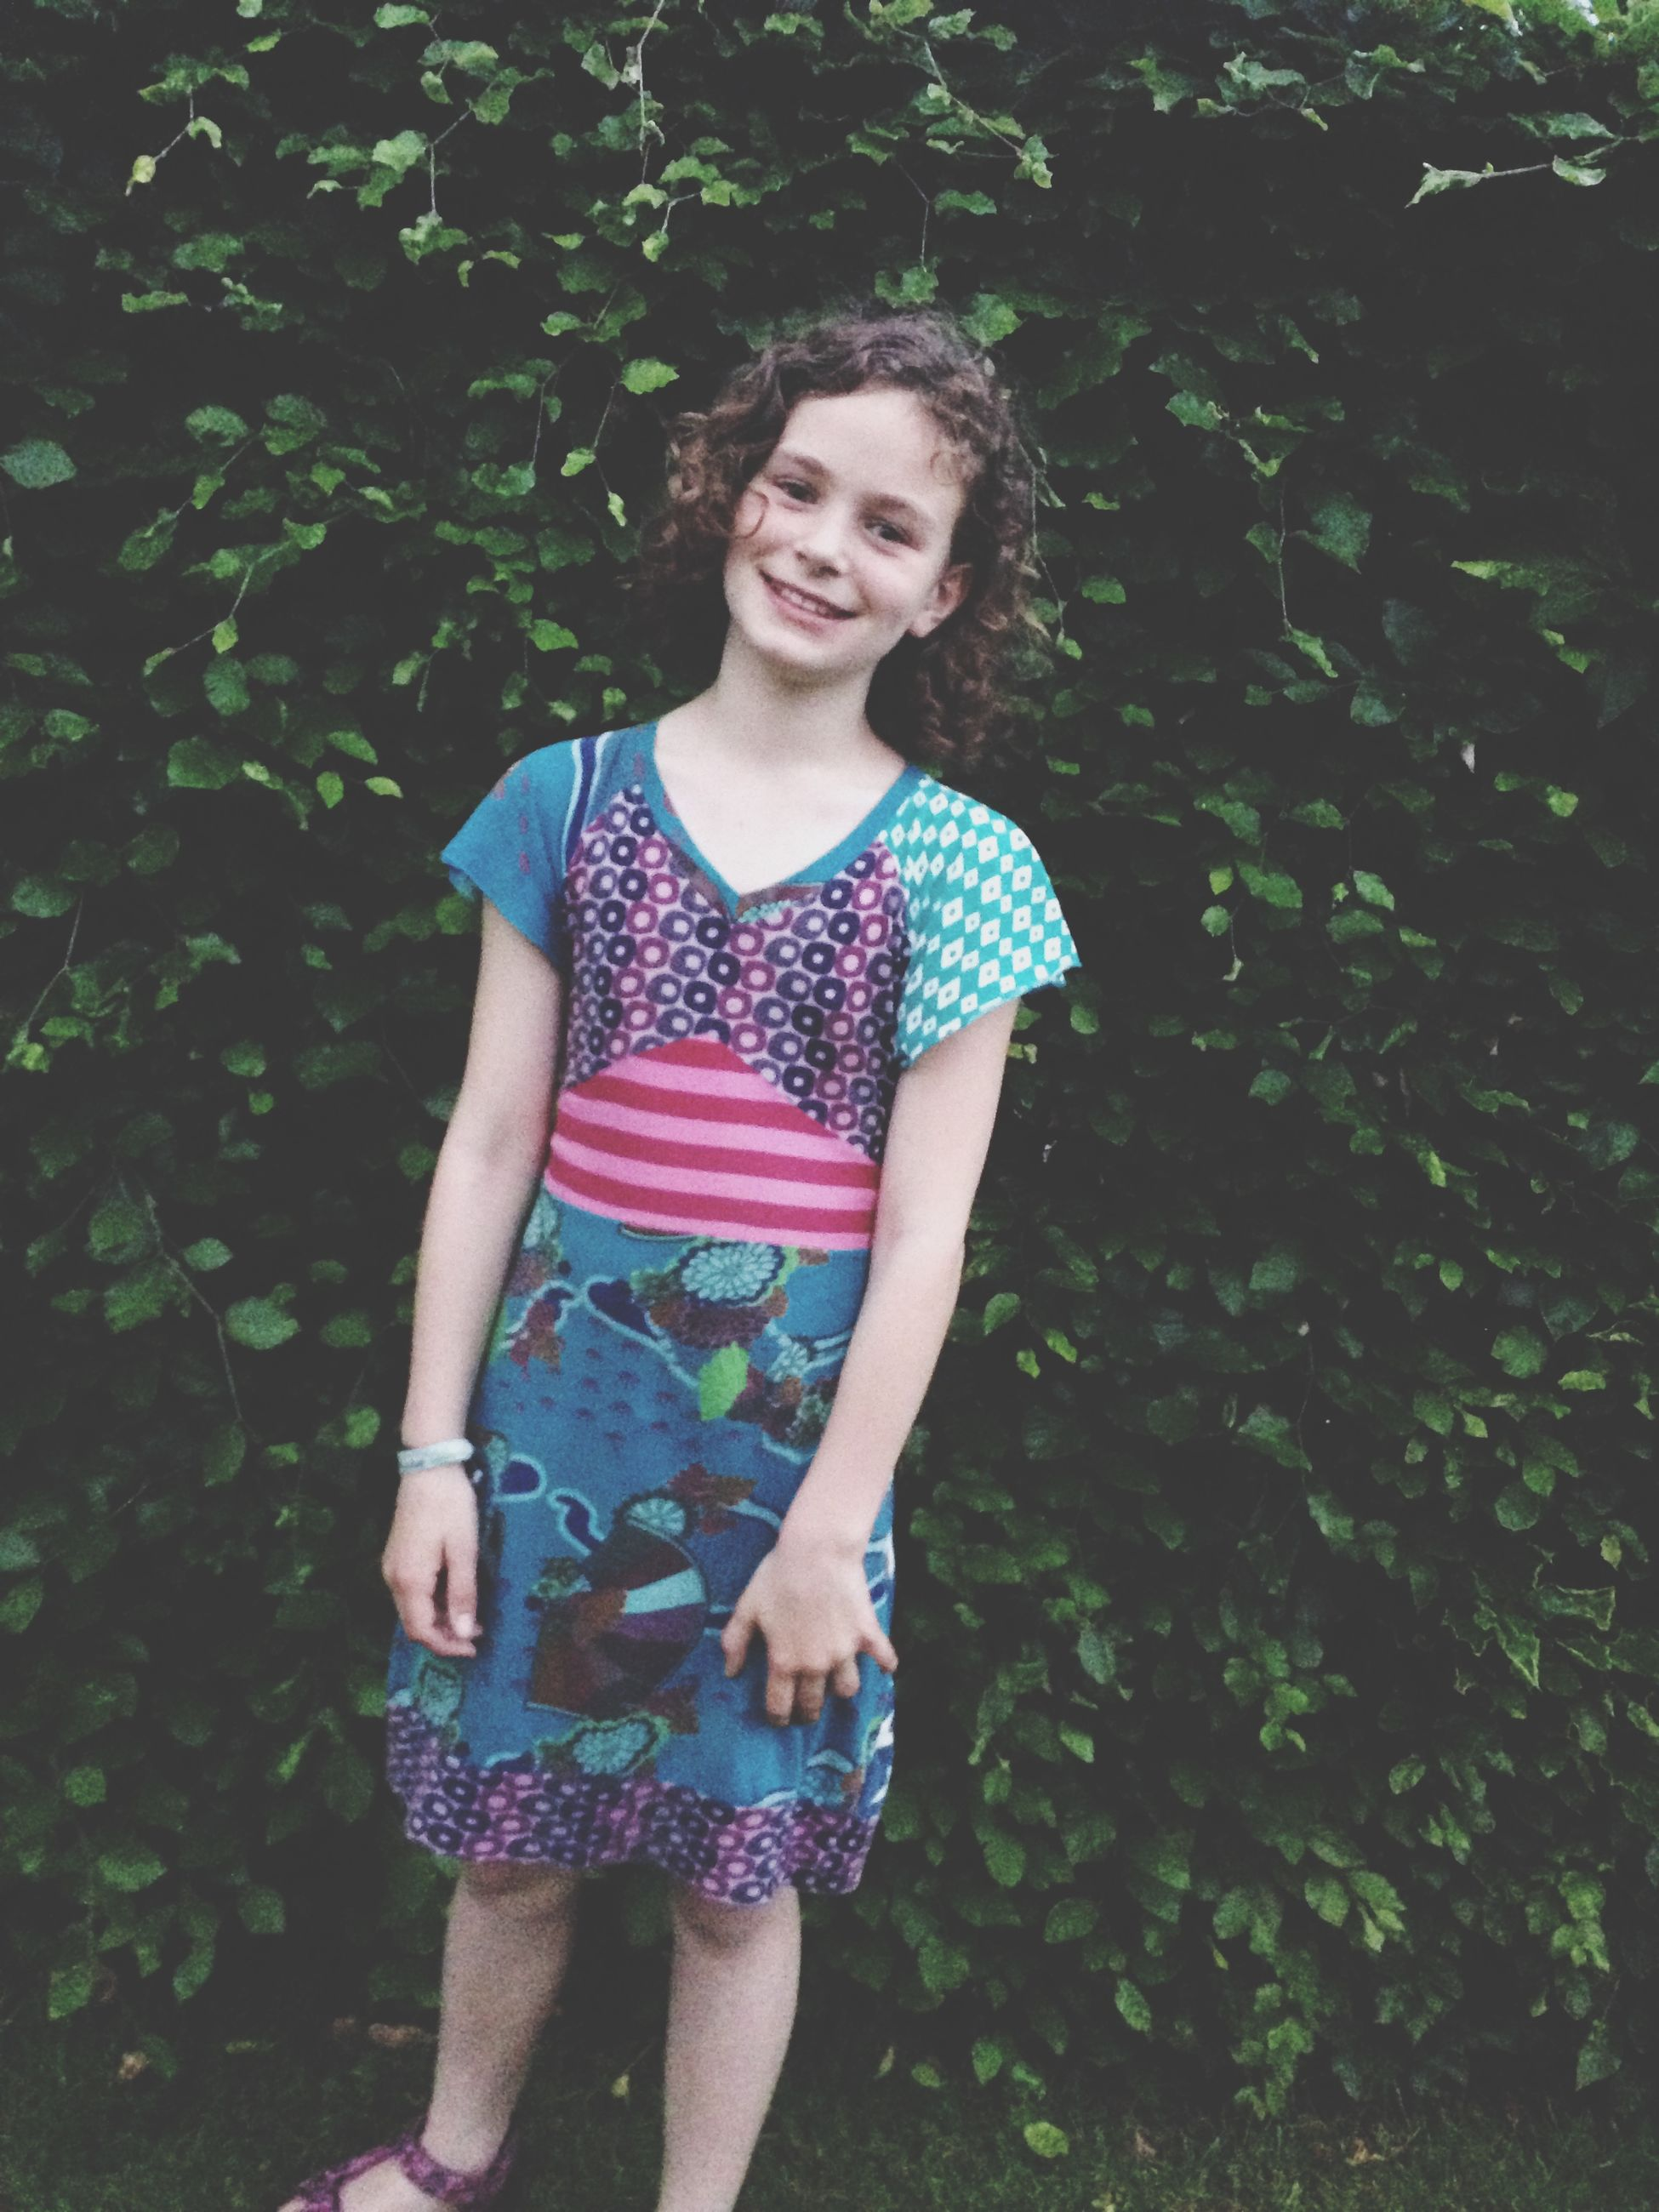 person, childhood, looking at camera, casual clothing, portrait, elementary age, lifestyles, leisure activity, full length, front view, smiling, girls, cute, happiness, standing, innocence, three quarter length, boys